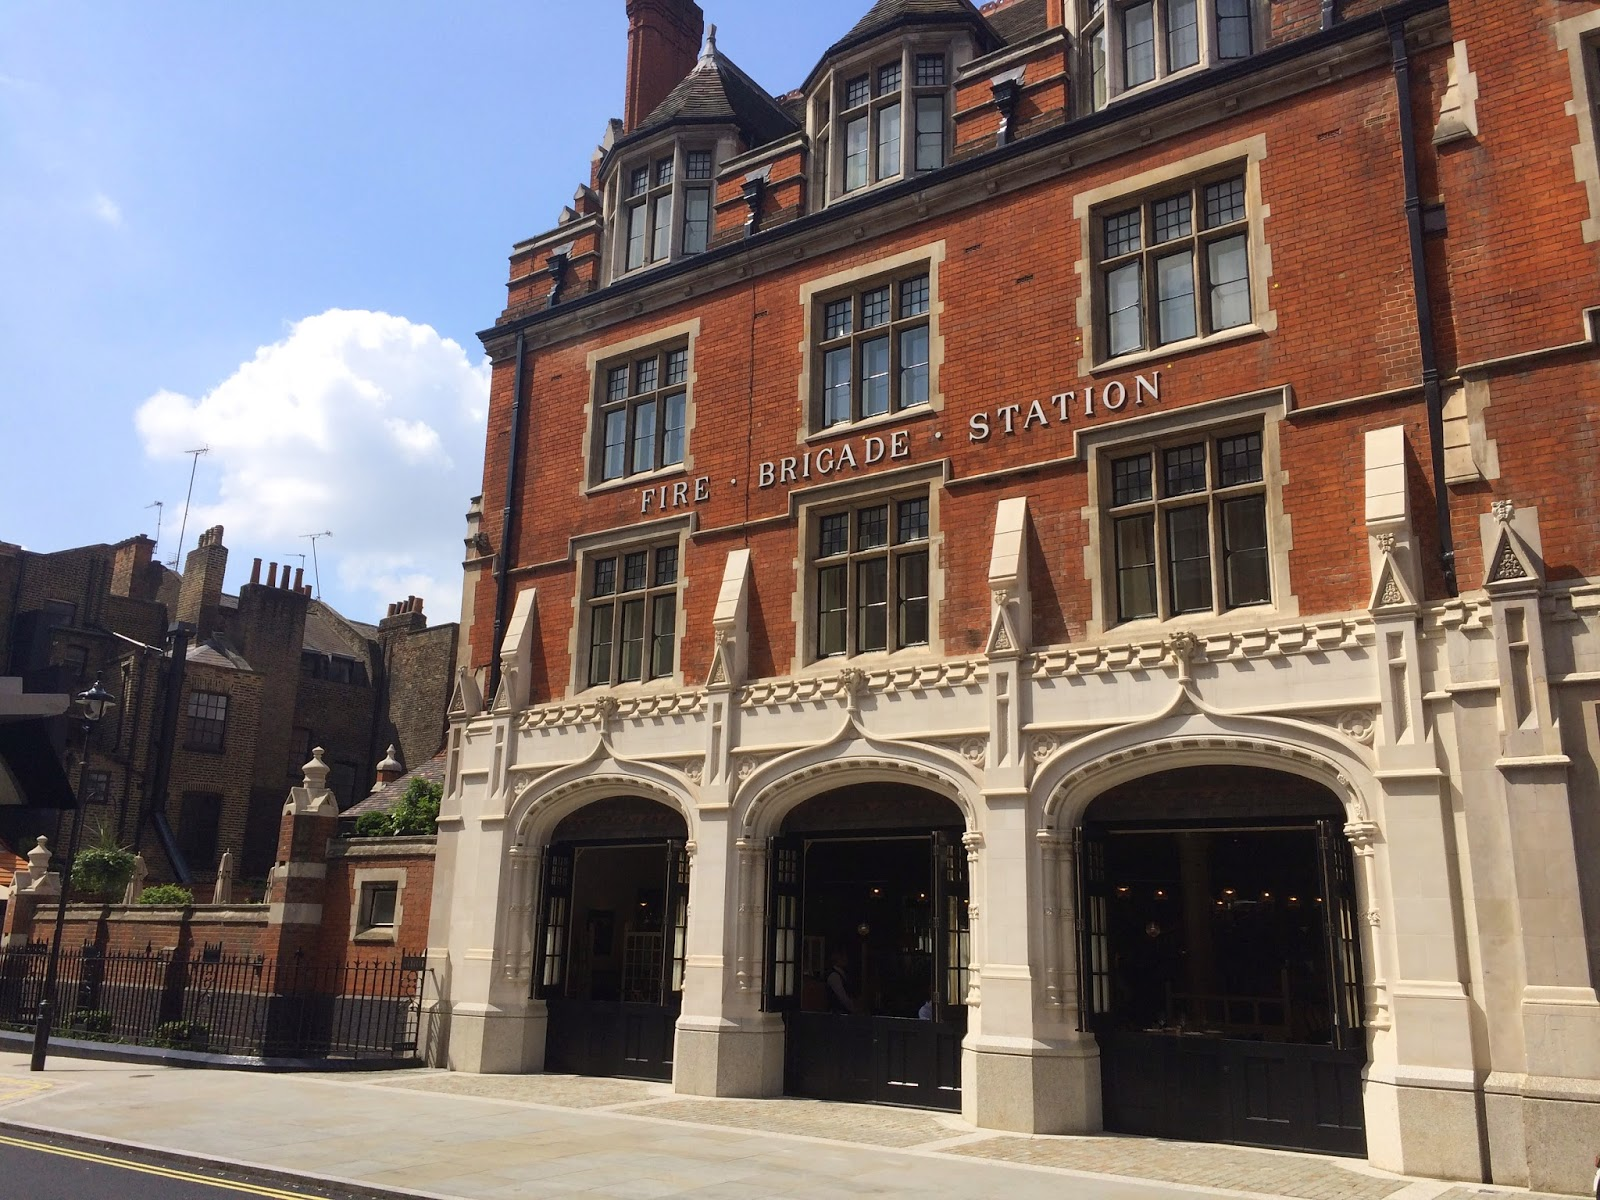 The Chiltern Firehouse restaurant and bar Marylebone